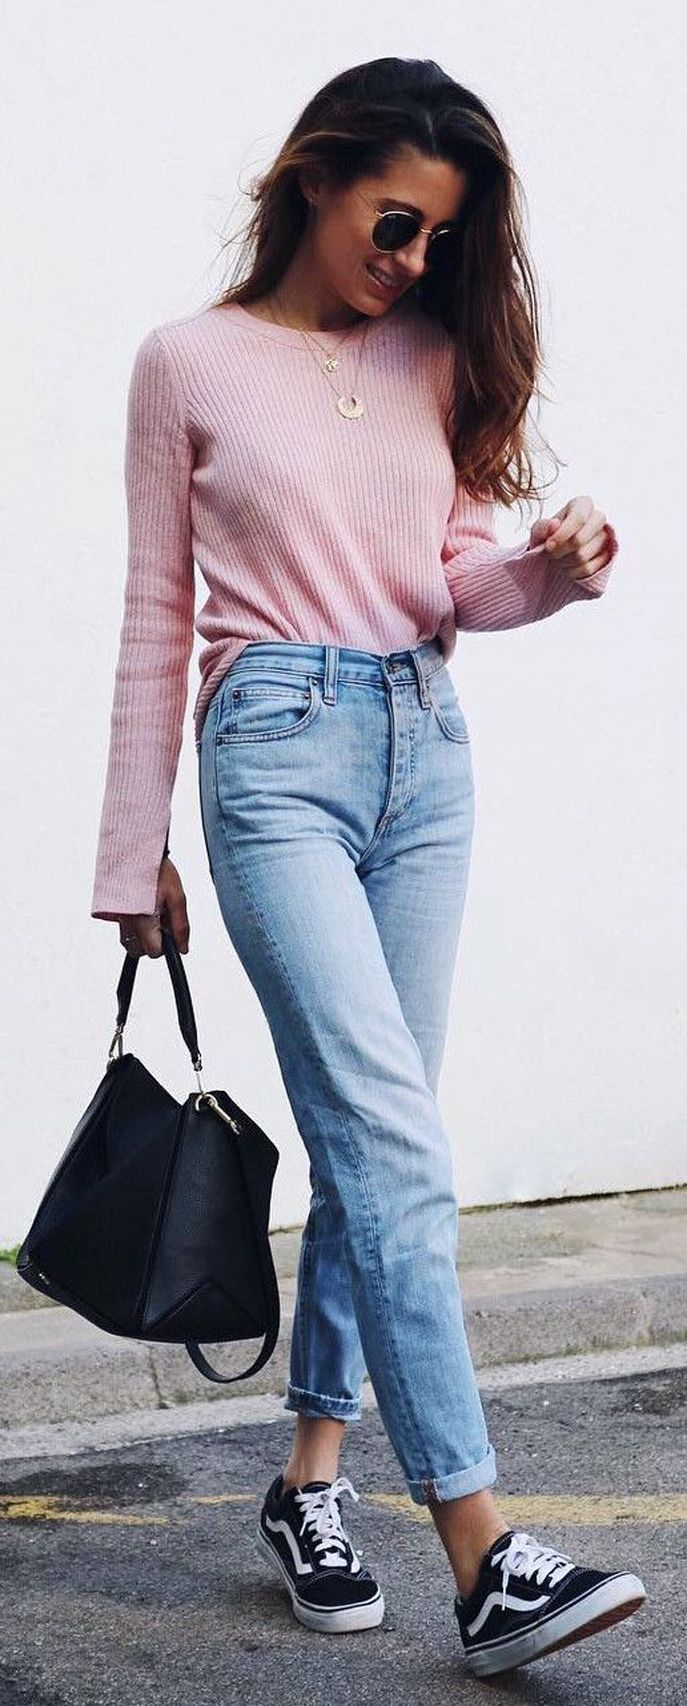 Pinterest : 30 looks à copier au mois d'avril | Glamour